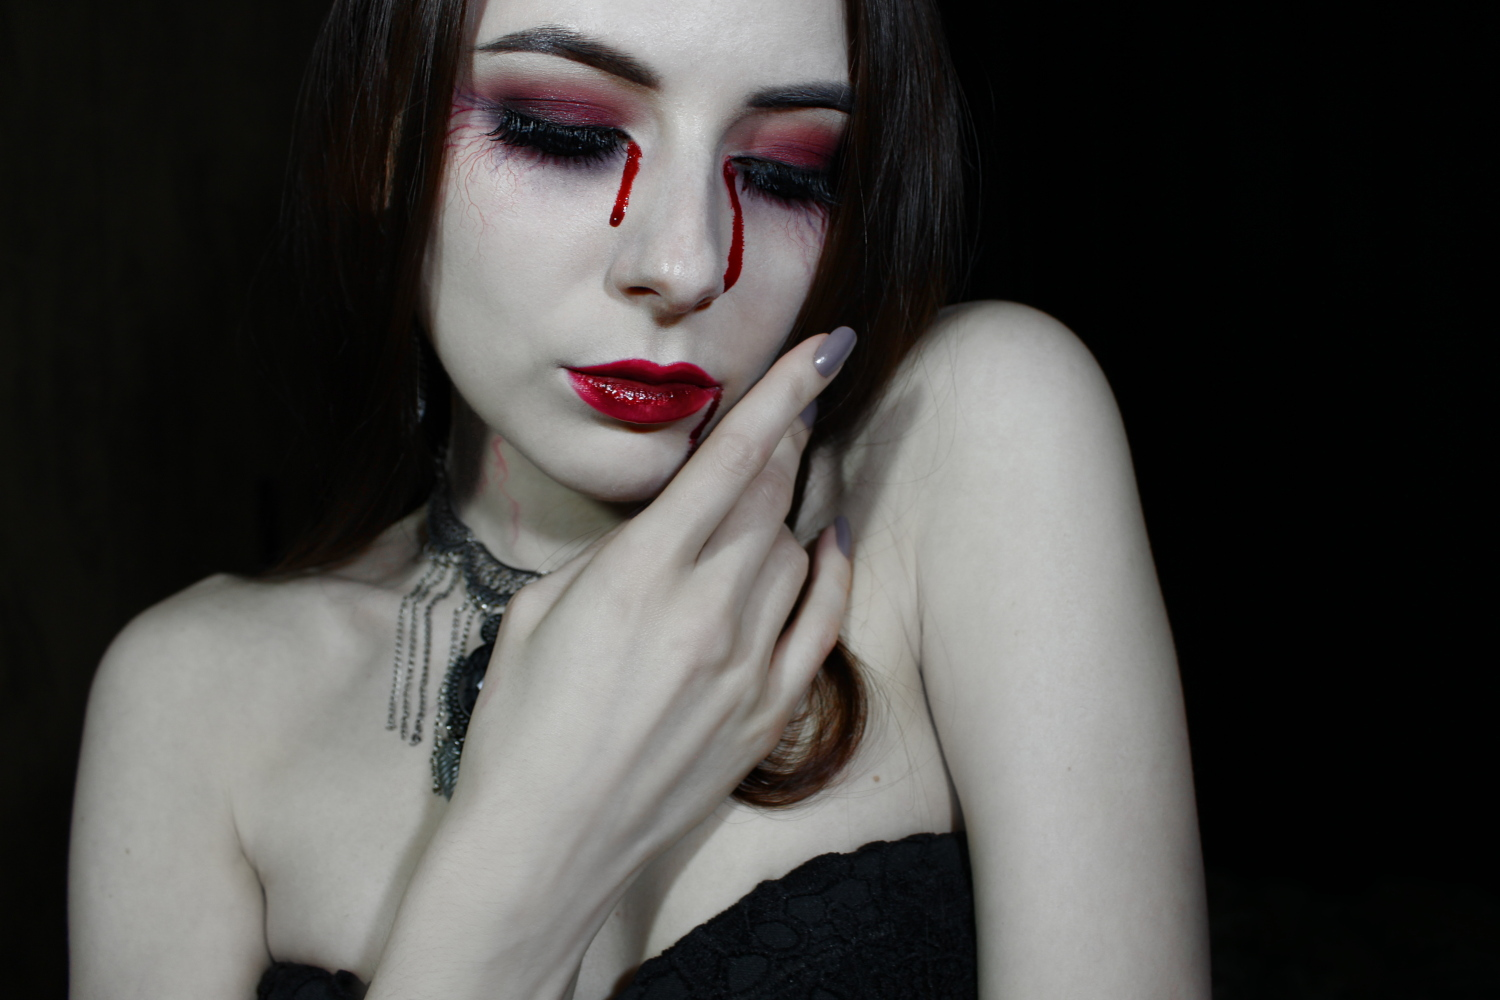 VAMPIRE HALLOWEEN MAKEUP TUTORIAL | EASY SFX VAMPIRE BITE MARK